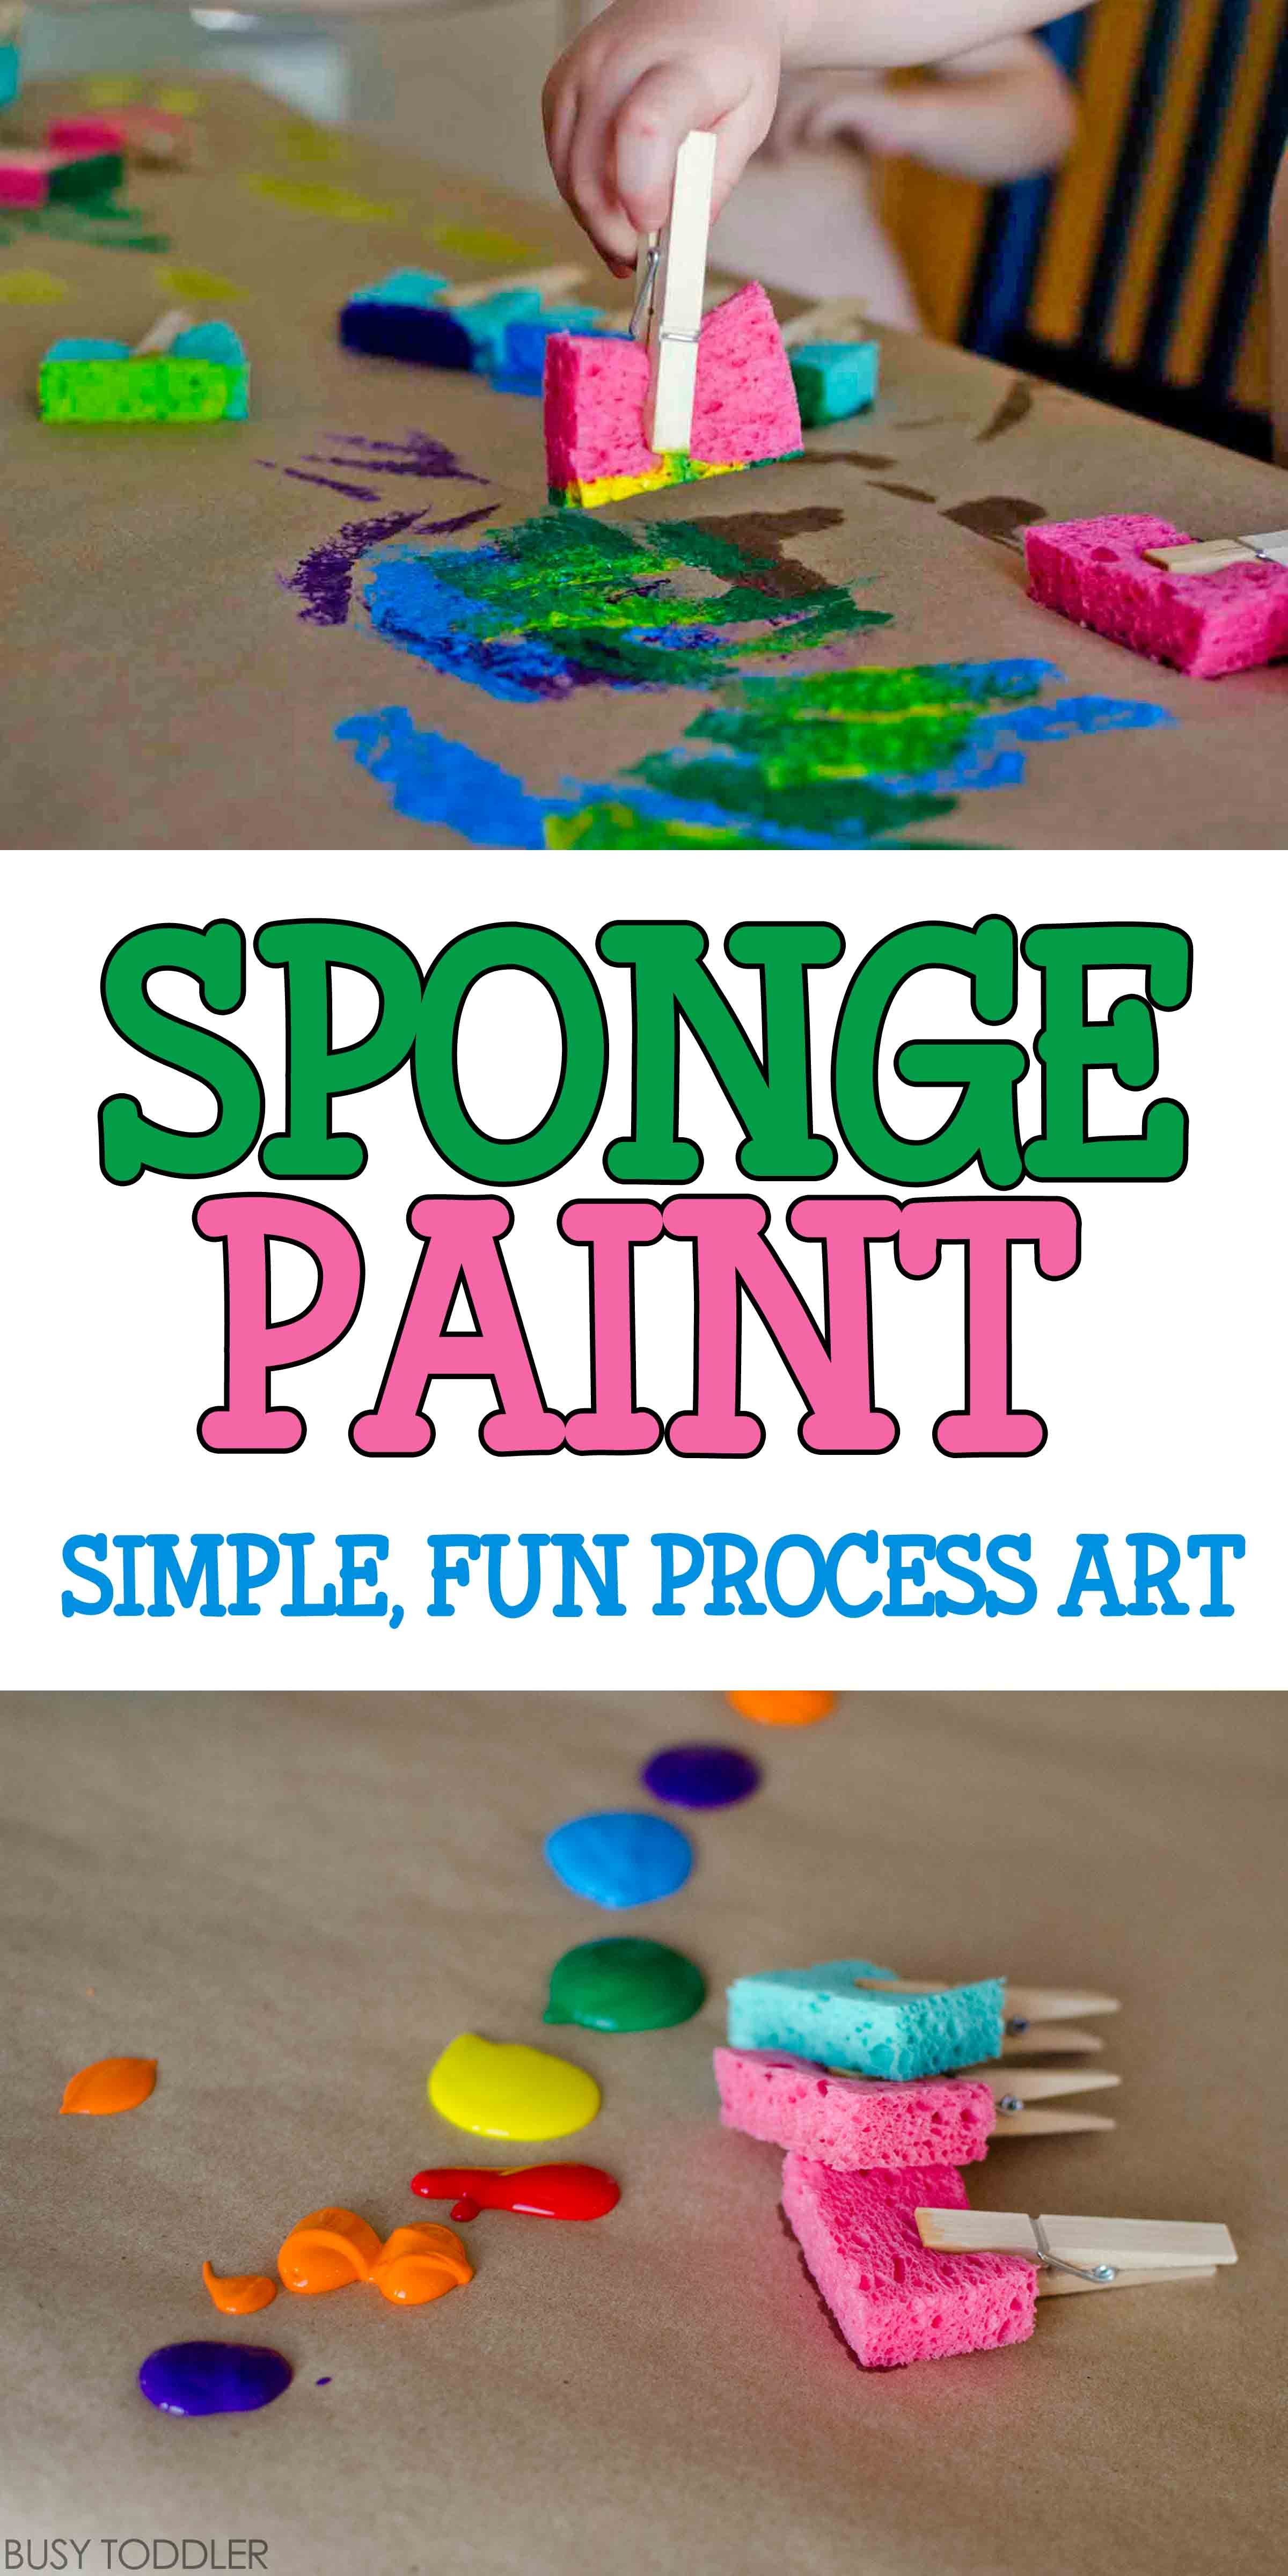 Pinterest Art Activities for Toddlers